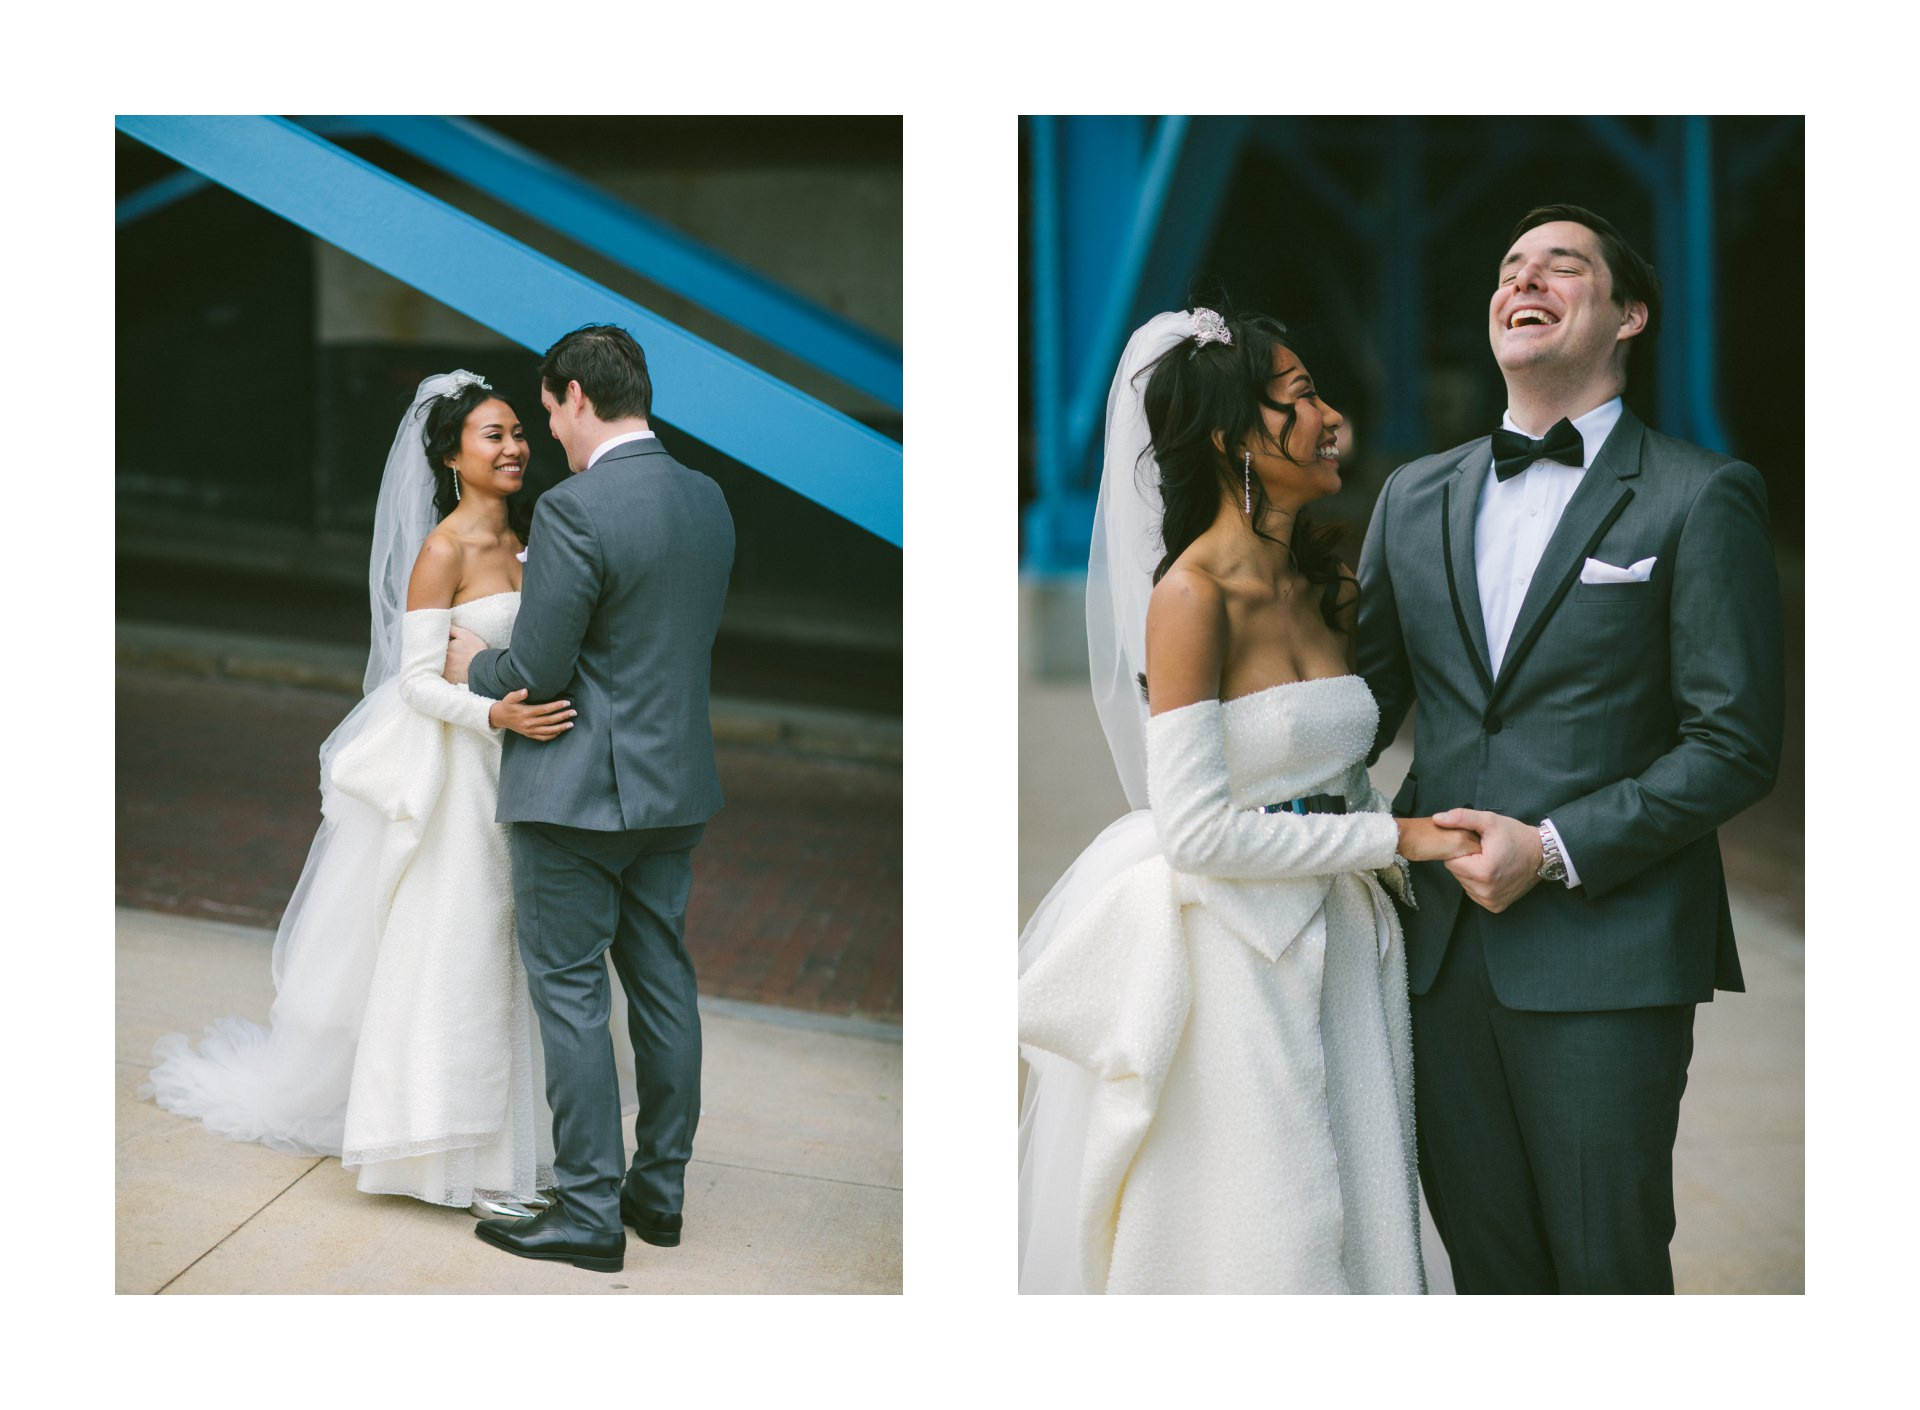 Wedding at Ernst and Young Rooftop in Downtown Cleveland 1 25.jpg